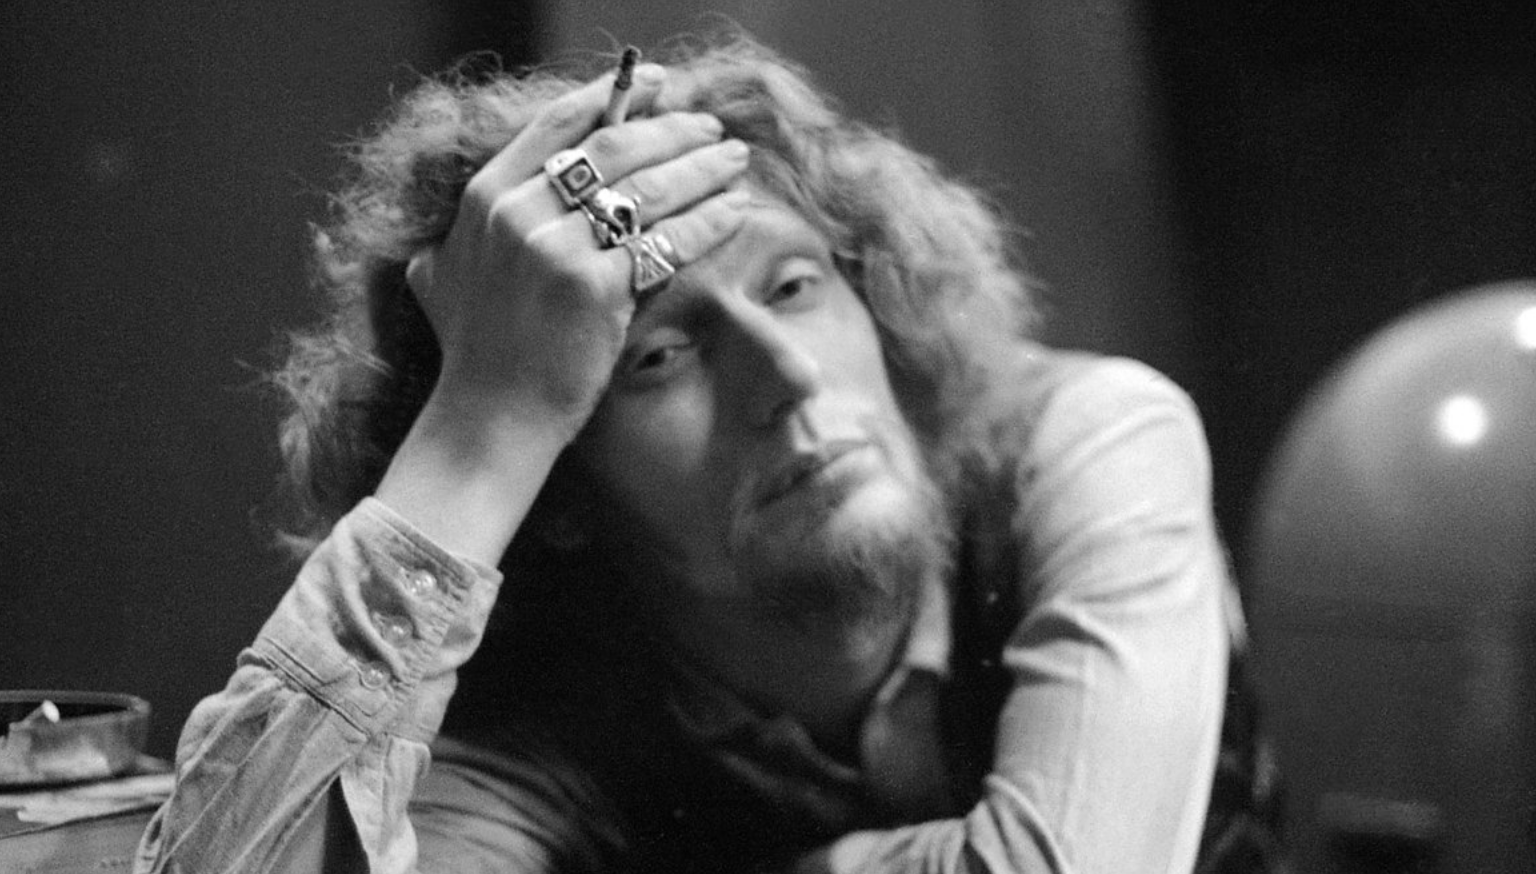 Tributes to Ginger Baker pour in from Jack Bruce's family, Steve Winwood, Paul McCartney, and more